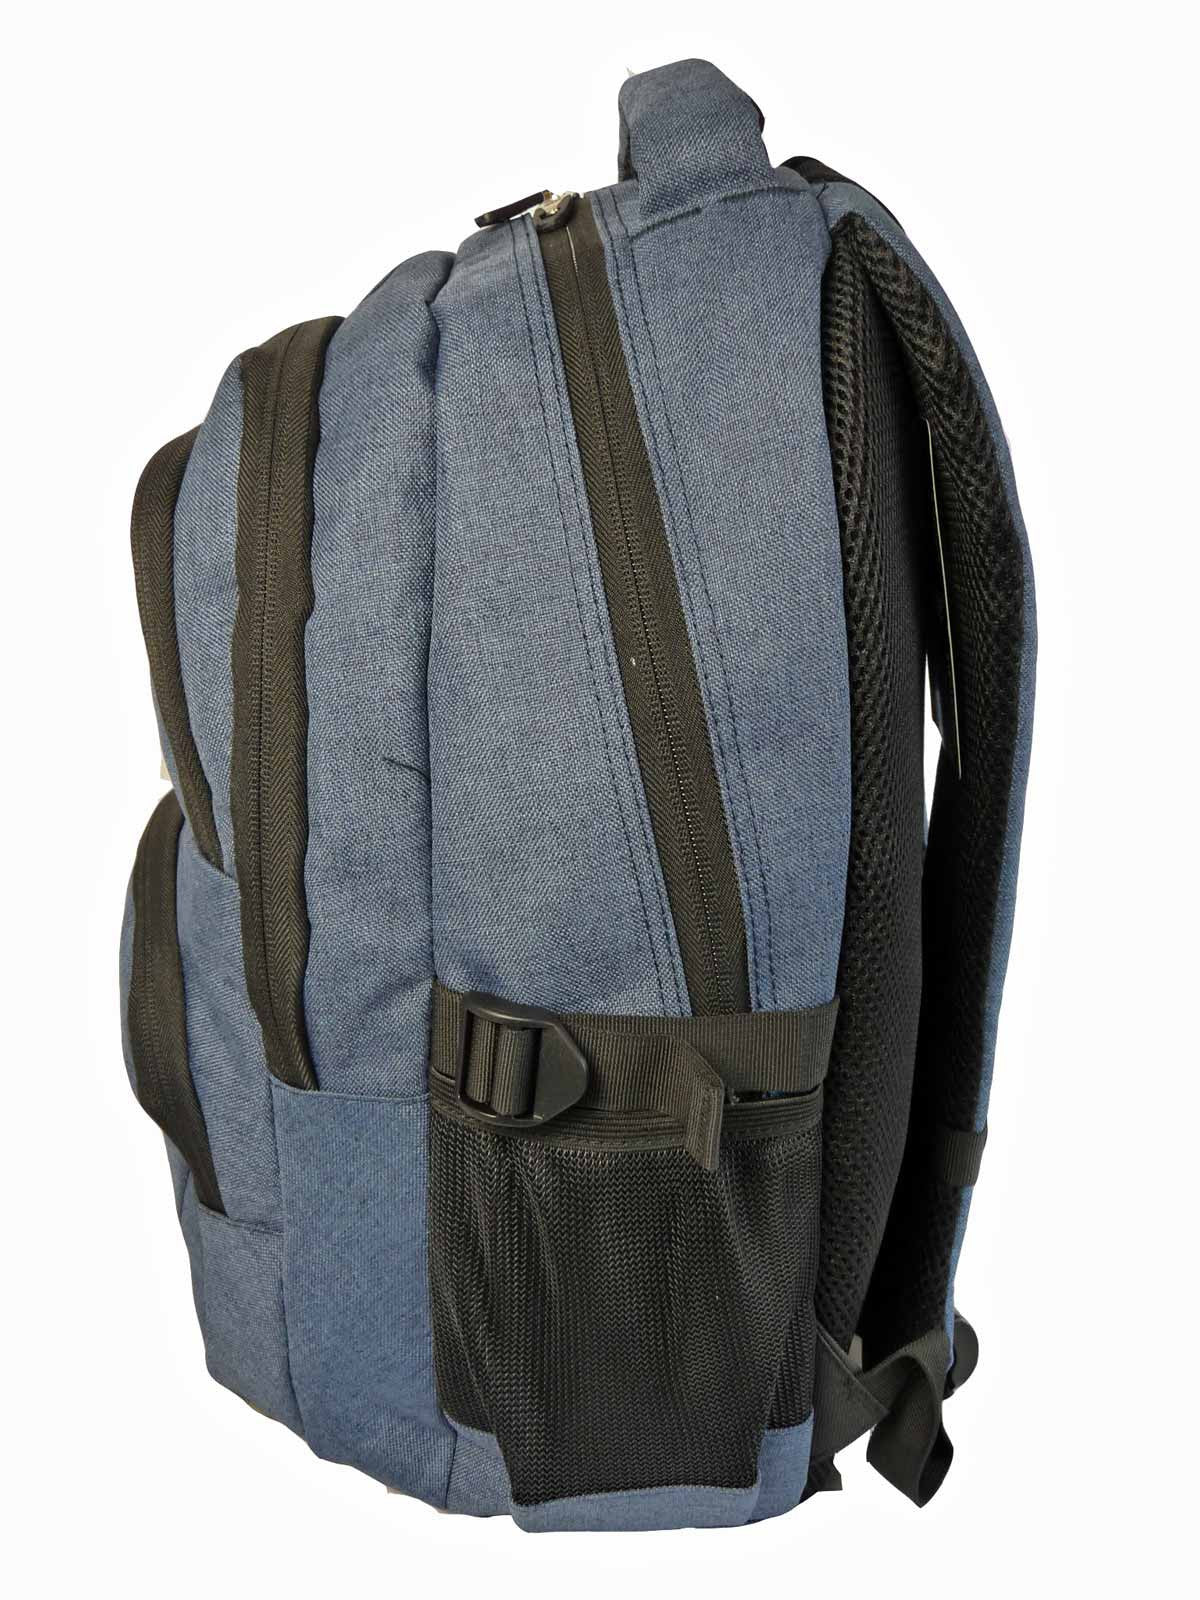 Laptop Macbook Backpack Rucksack Bag RL43N S Side View